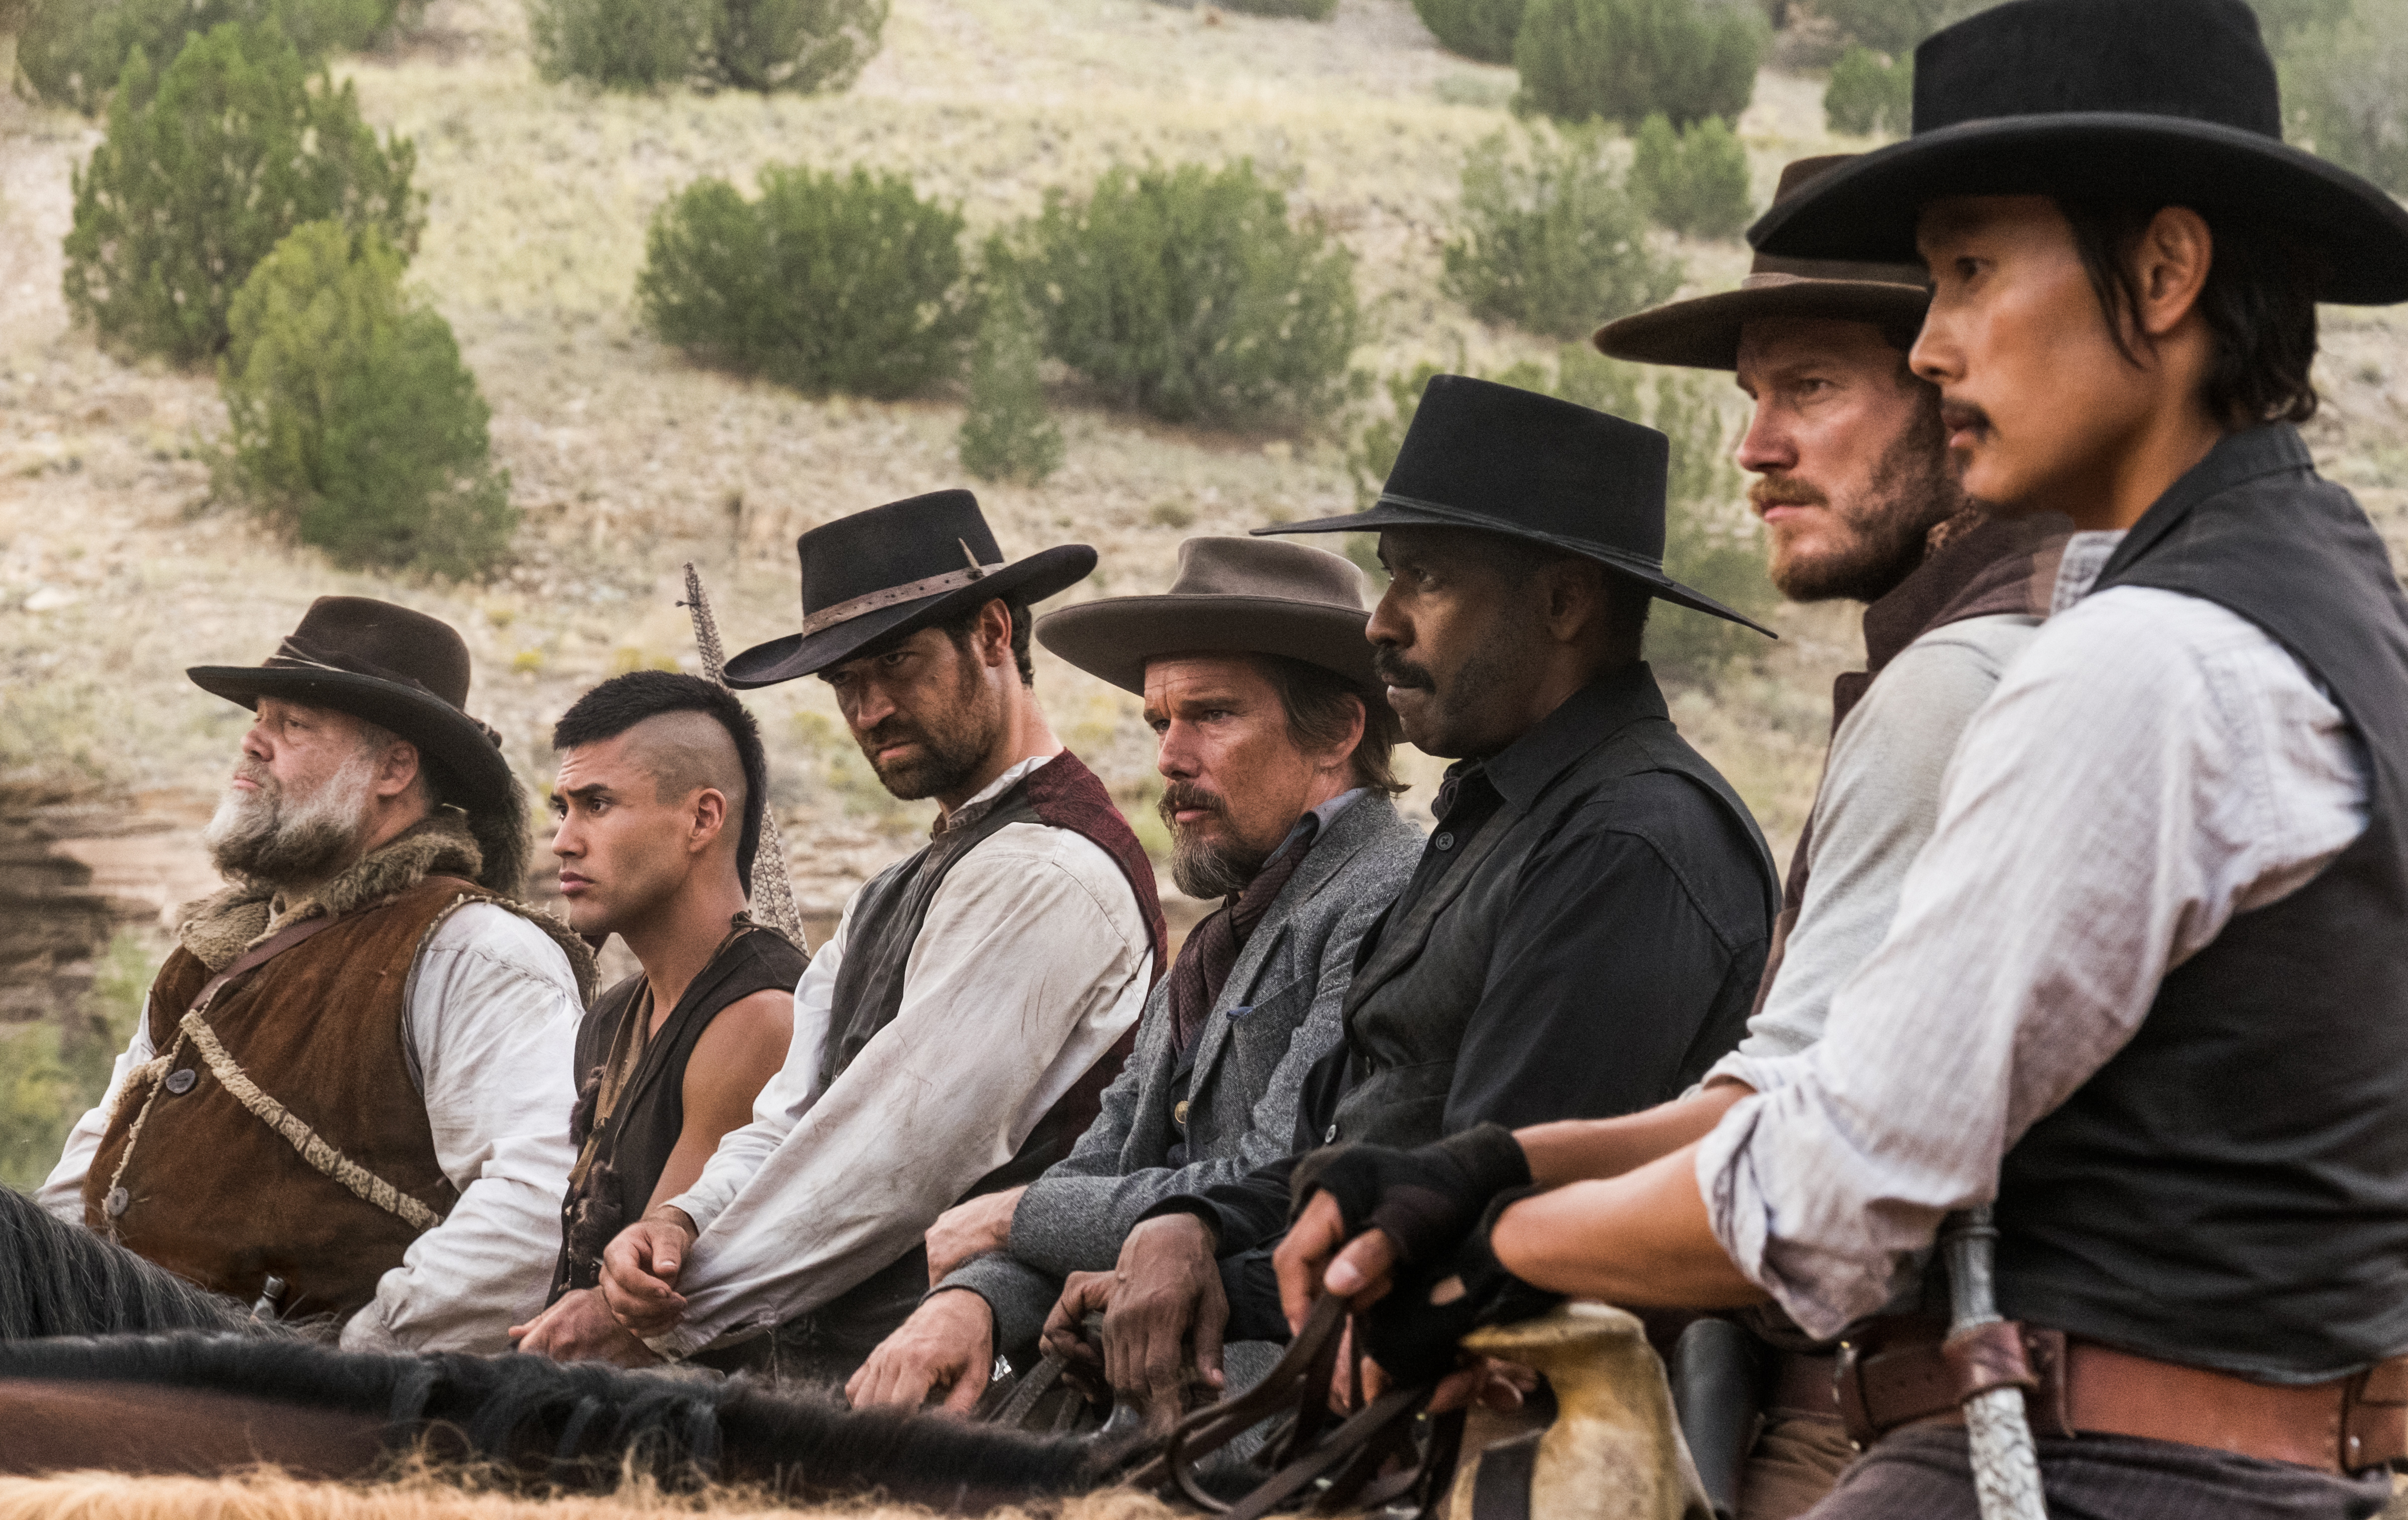 MGM, Columbia Pictures, and Twitch Team Up for Magnificent Seven Showdown